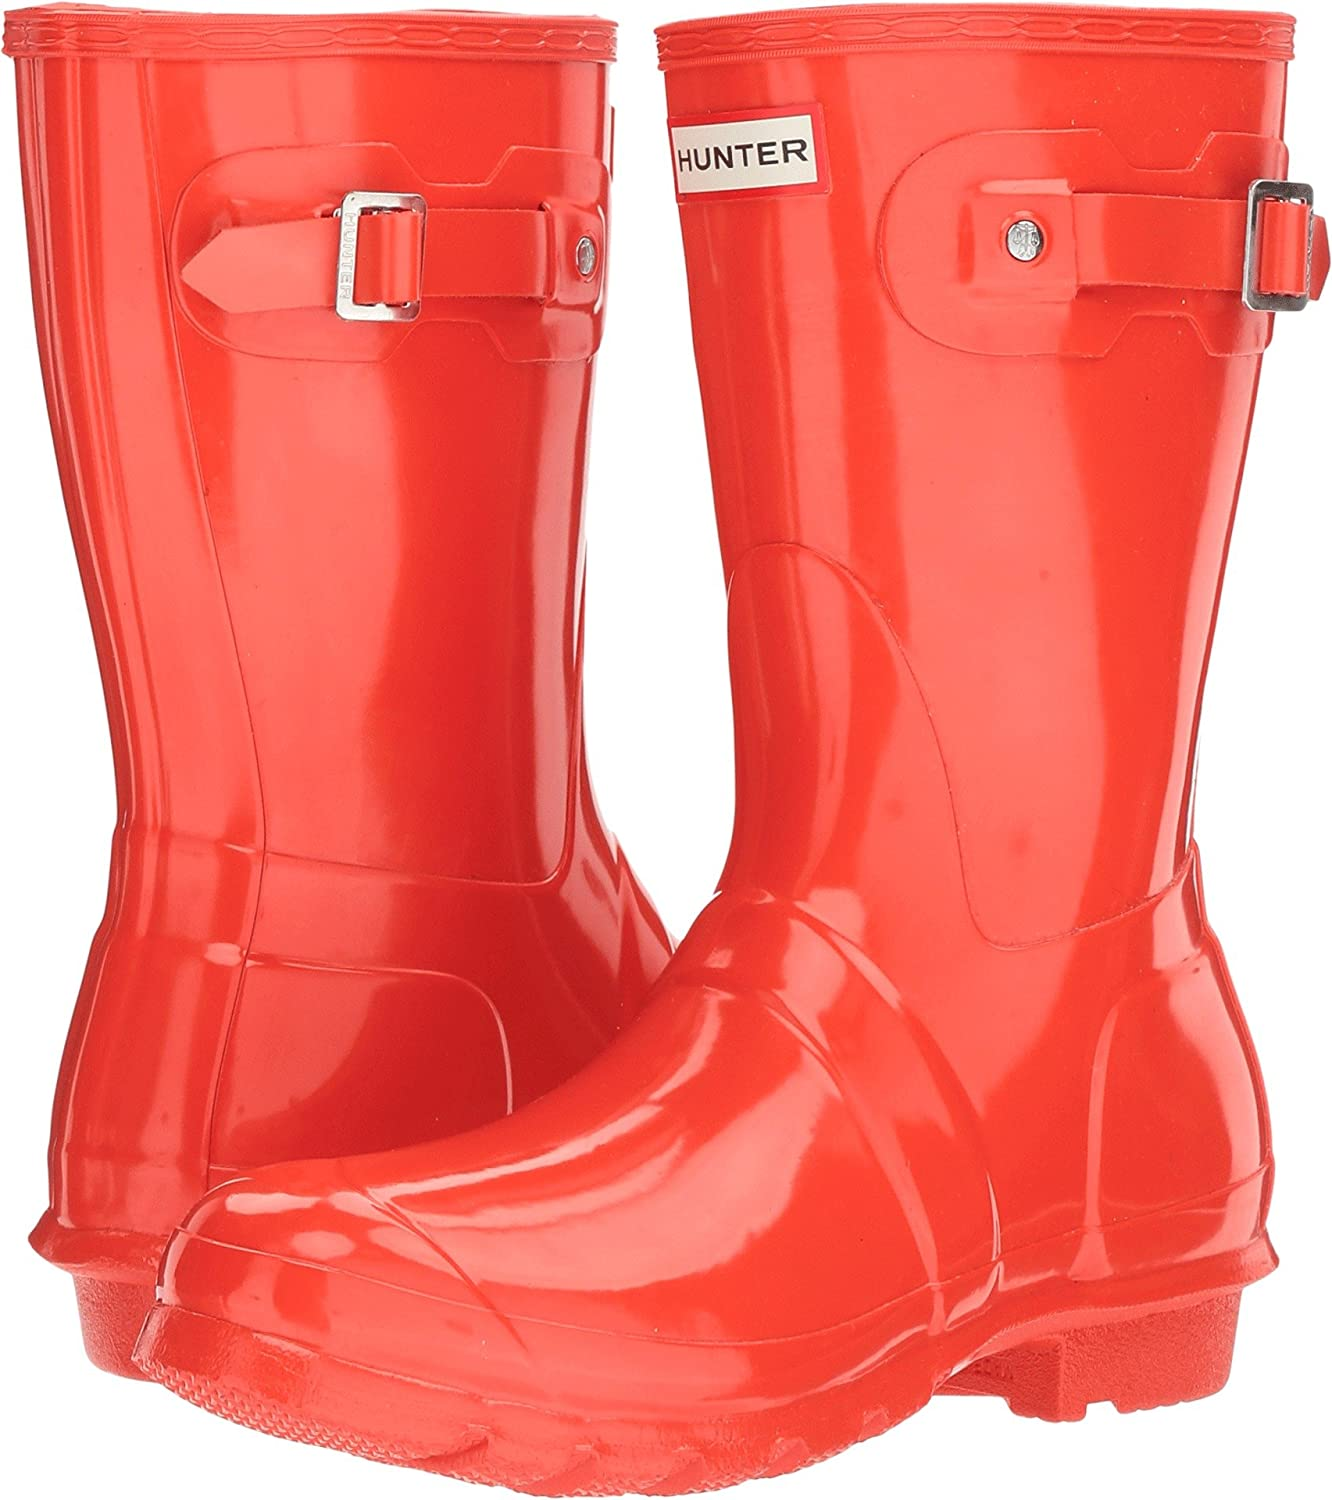 Hunter Women's Original Short Gloss Rain Boots B01MT5JP14 7 B(M) US|Orange